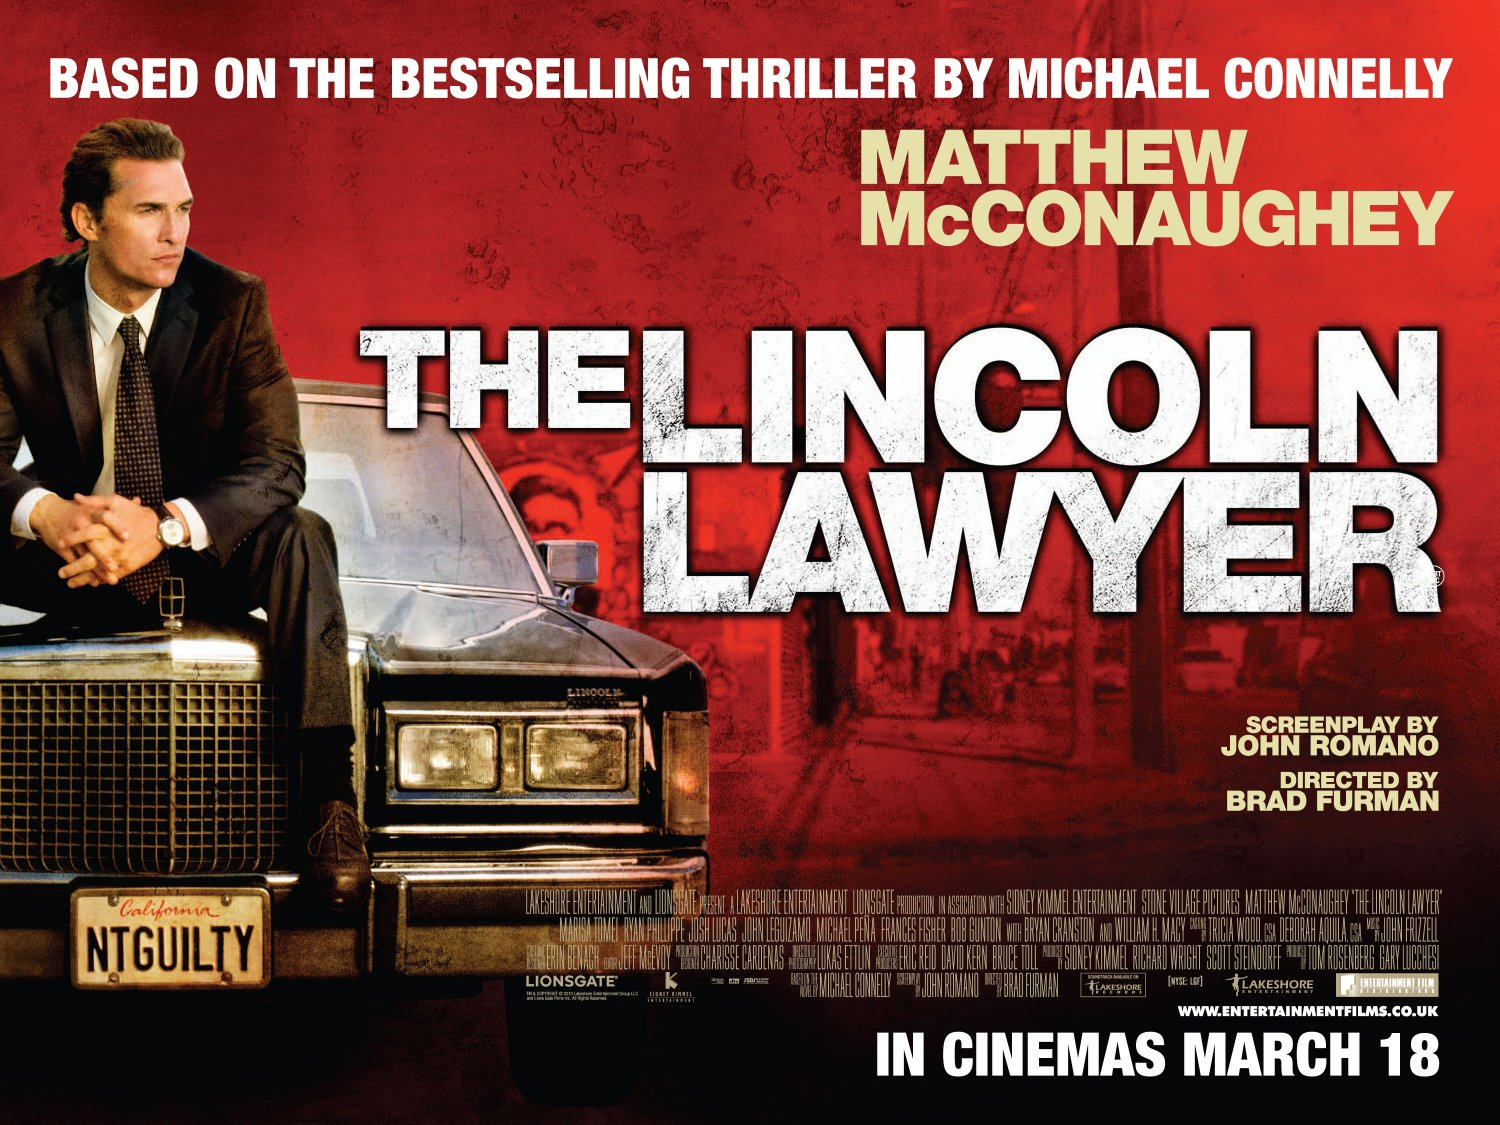 http://2.bp.blogspot.com/-o3e9dmXVtlU/TvwSVXOoFrI/AAAAAAAAChQ/GupFra8RYKI/s1600/The-Lincoln-Lawyer-Wallpaper-01.jpg